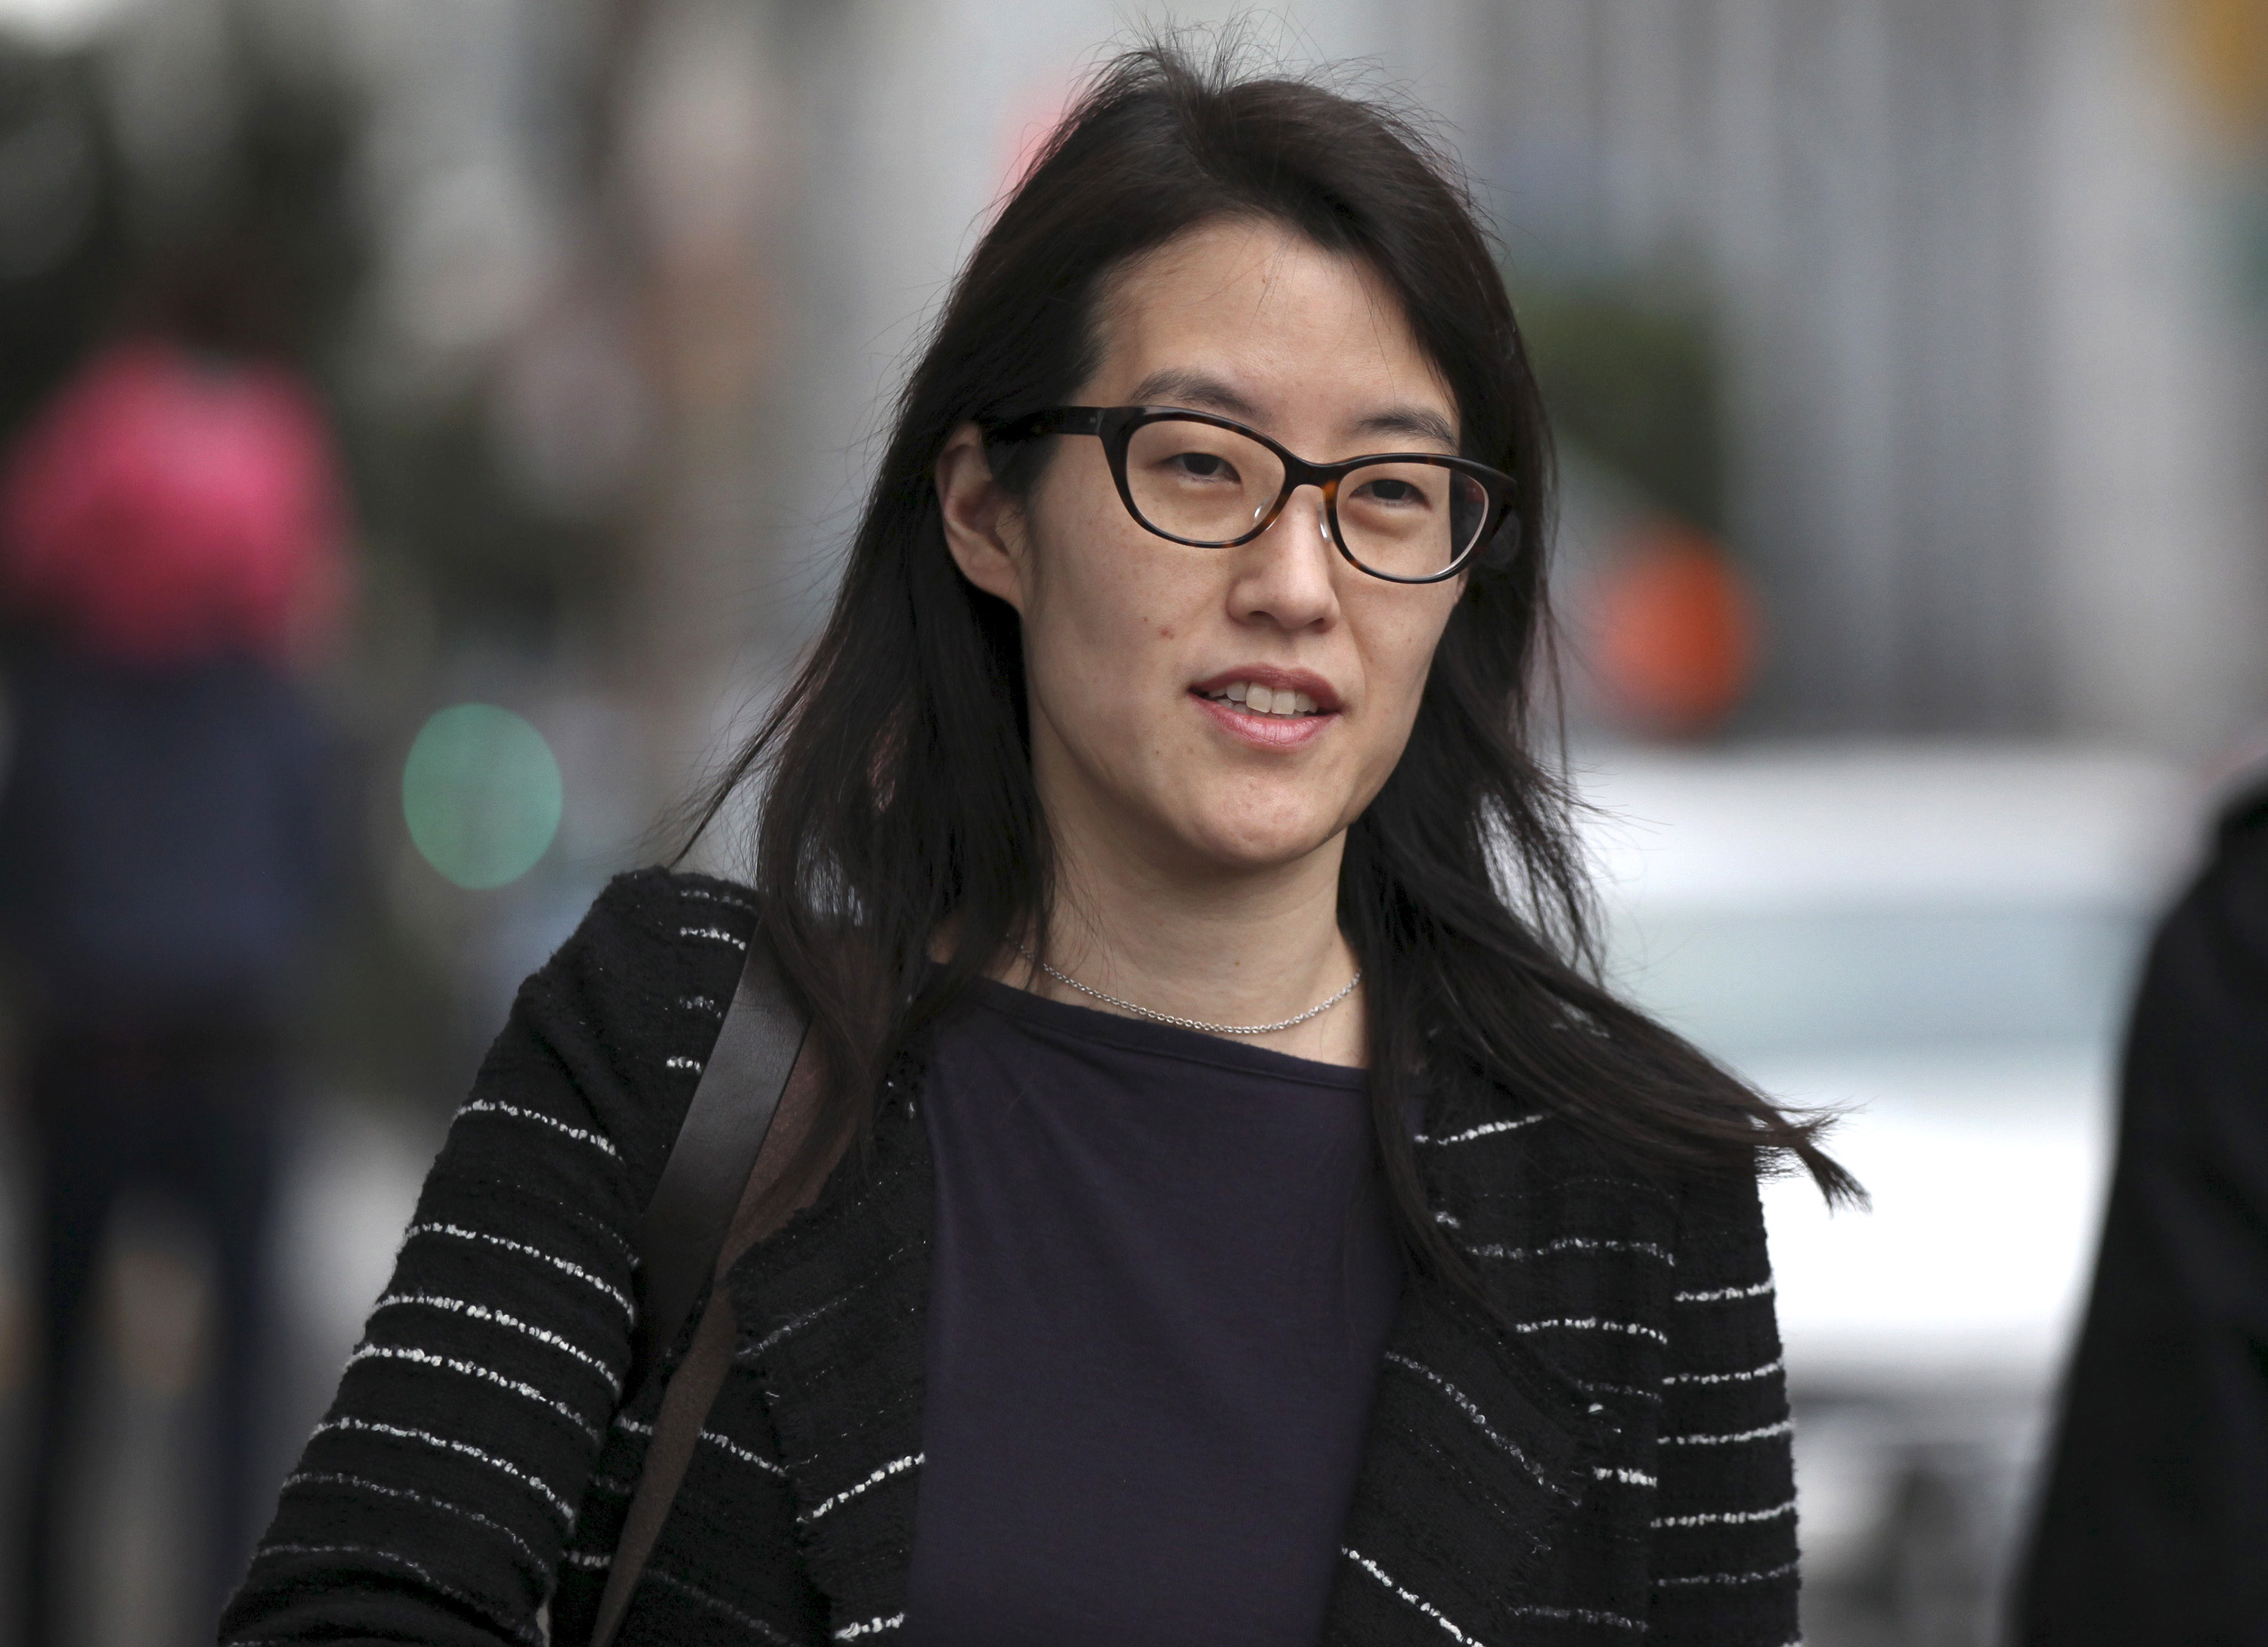 Ellen Pao will not appeal her loss in the sex discrimination case against storied venture capital firm Kleiner Perkins.